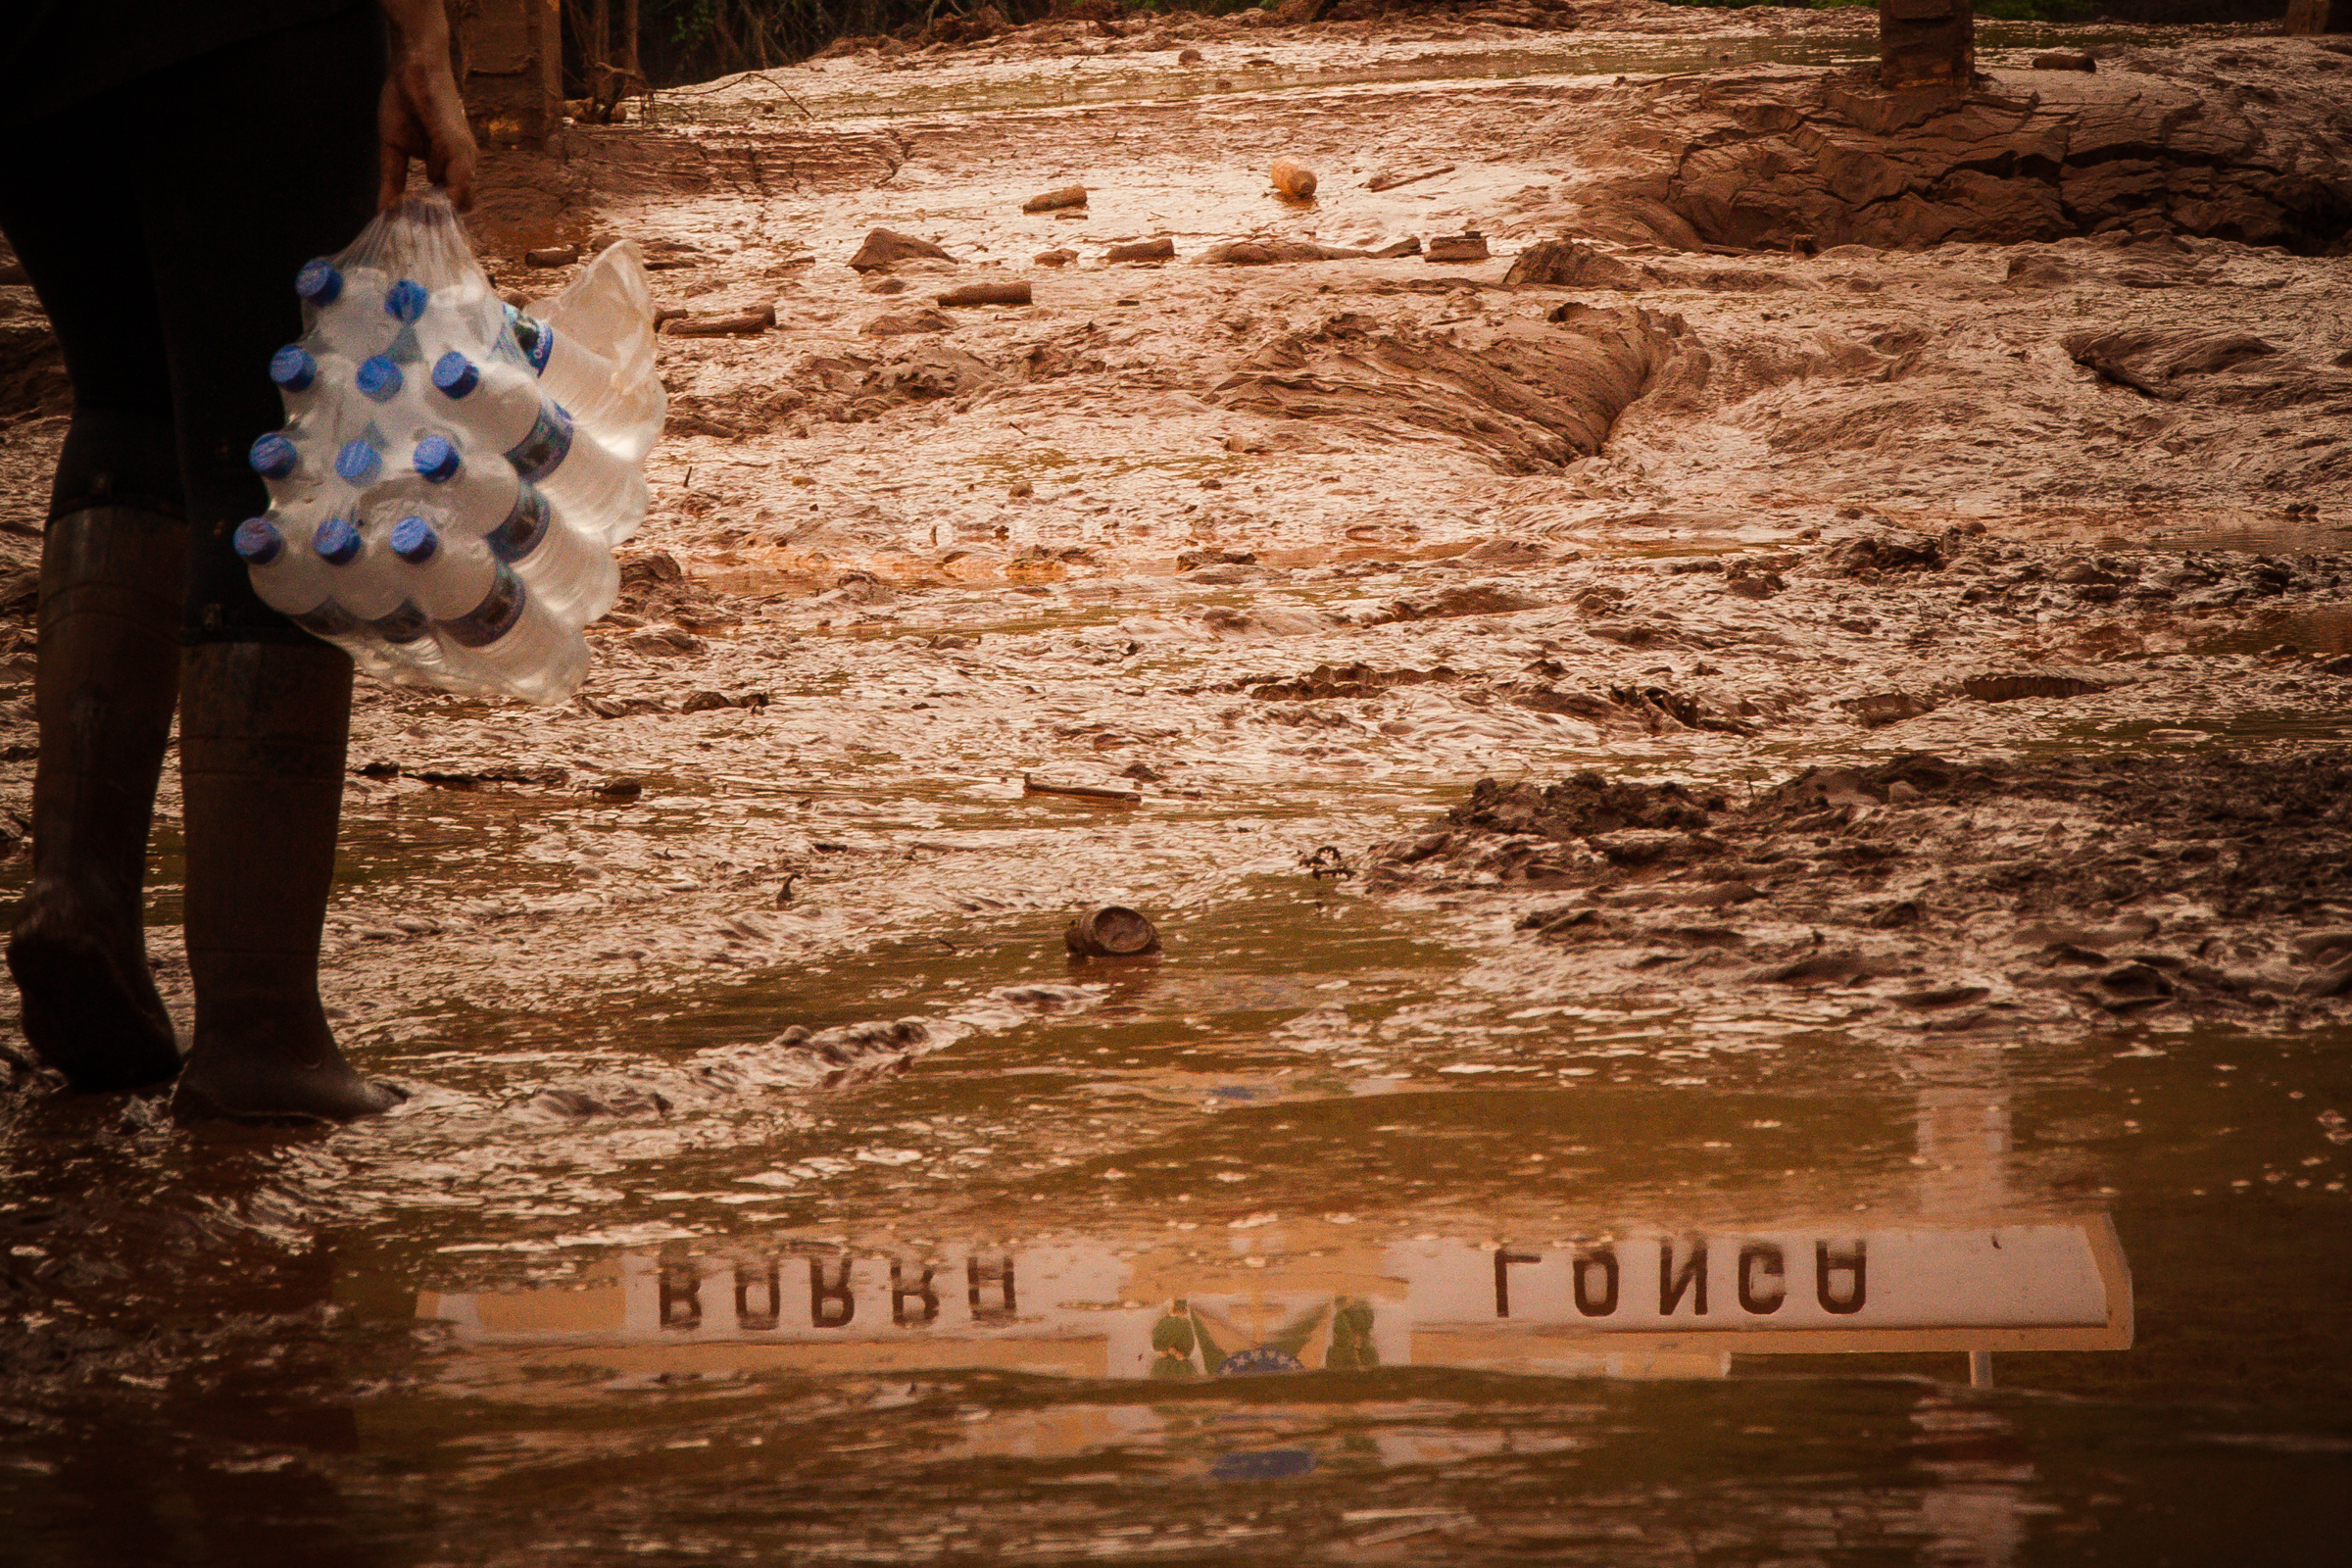 A resident of Barra Longa City carries water down a muddy street days after a tailings dam ruptured, killing 19 people and destroying the Doce River.